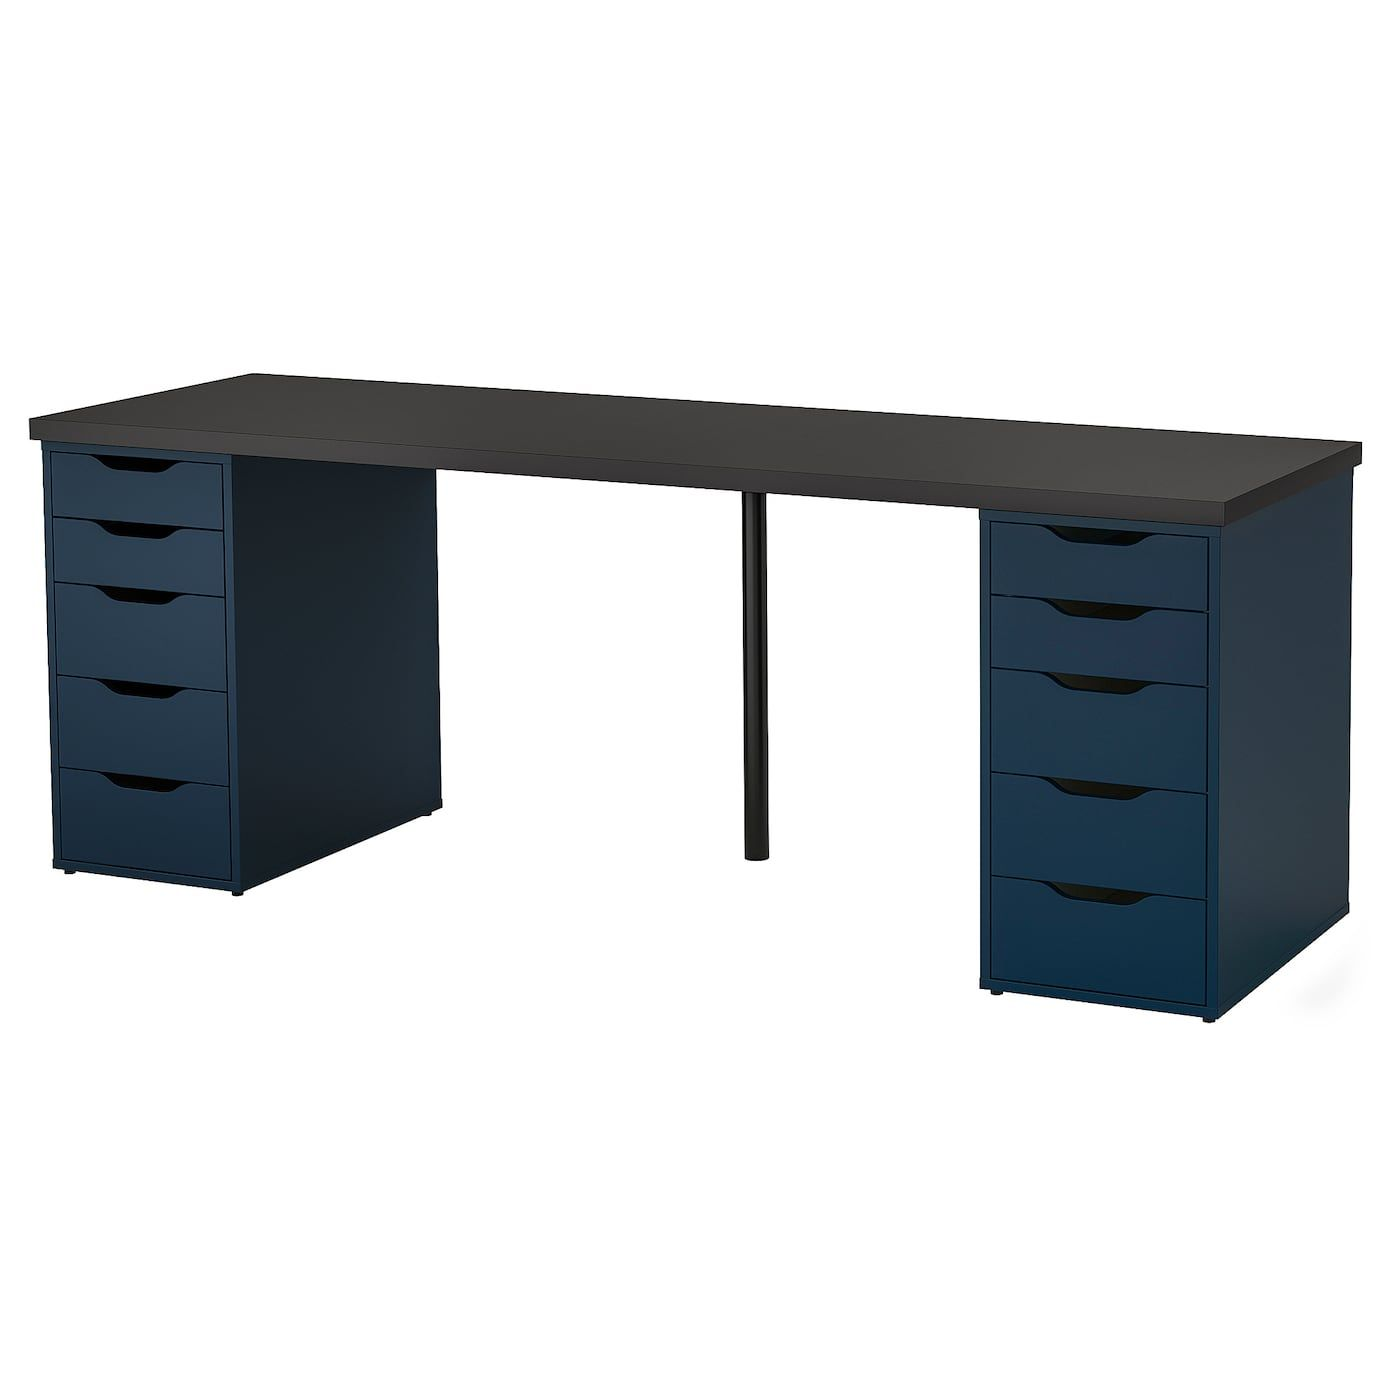 Table Black Brown Blue 78 3 4x23 5 8 Ikea Large Desk Drawer Unit